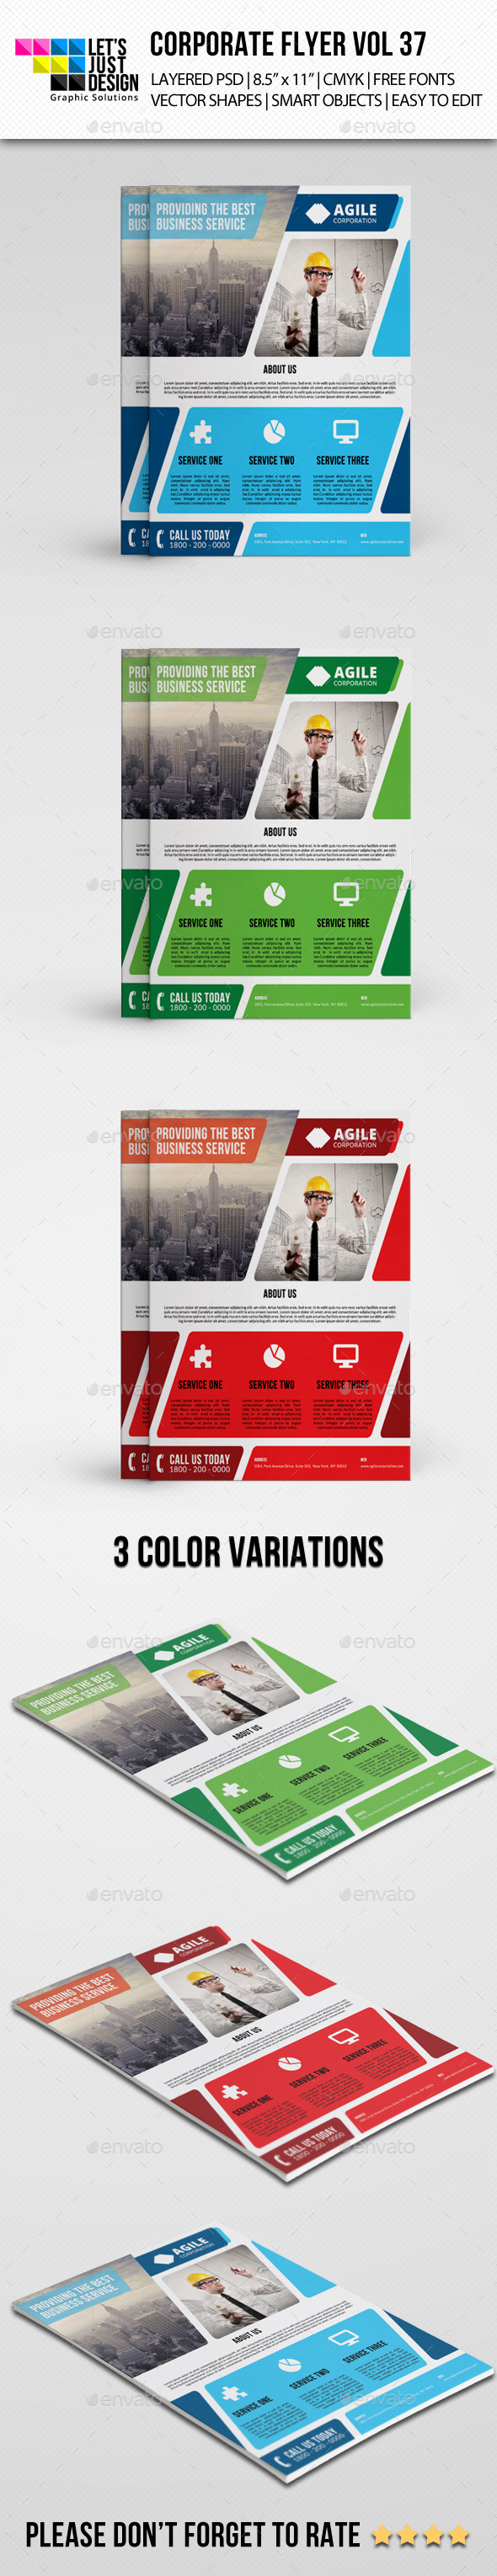 Corporate Flyer Template Vol 37 - Corporate Flyers